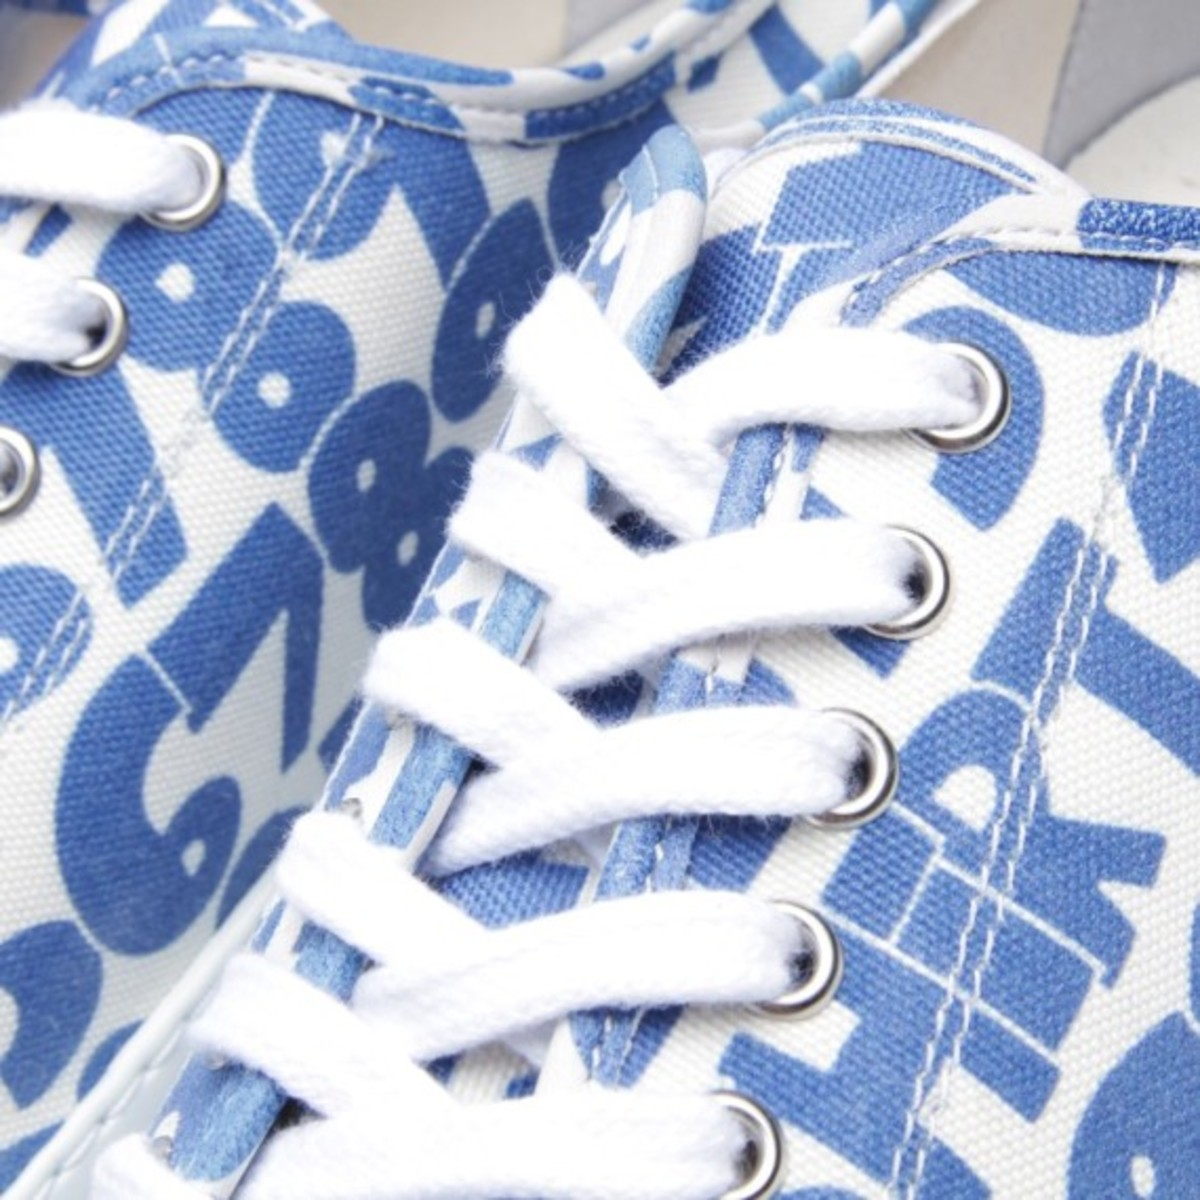 comme-des-garcons-shirt-the-generic-man-print-sneakers-11